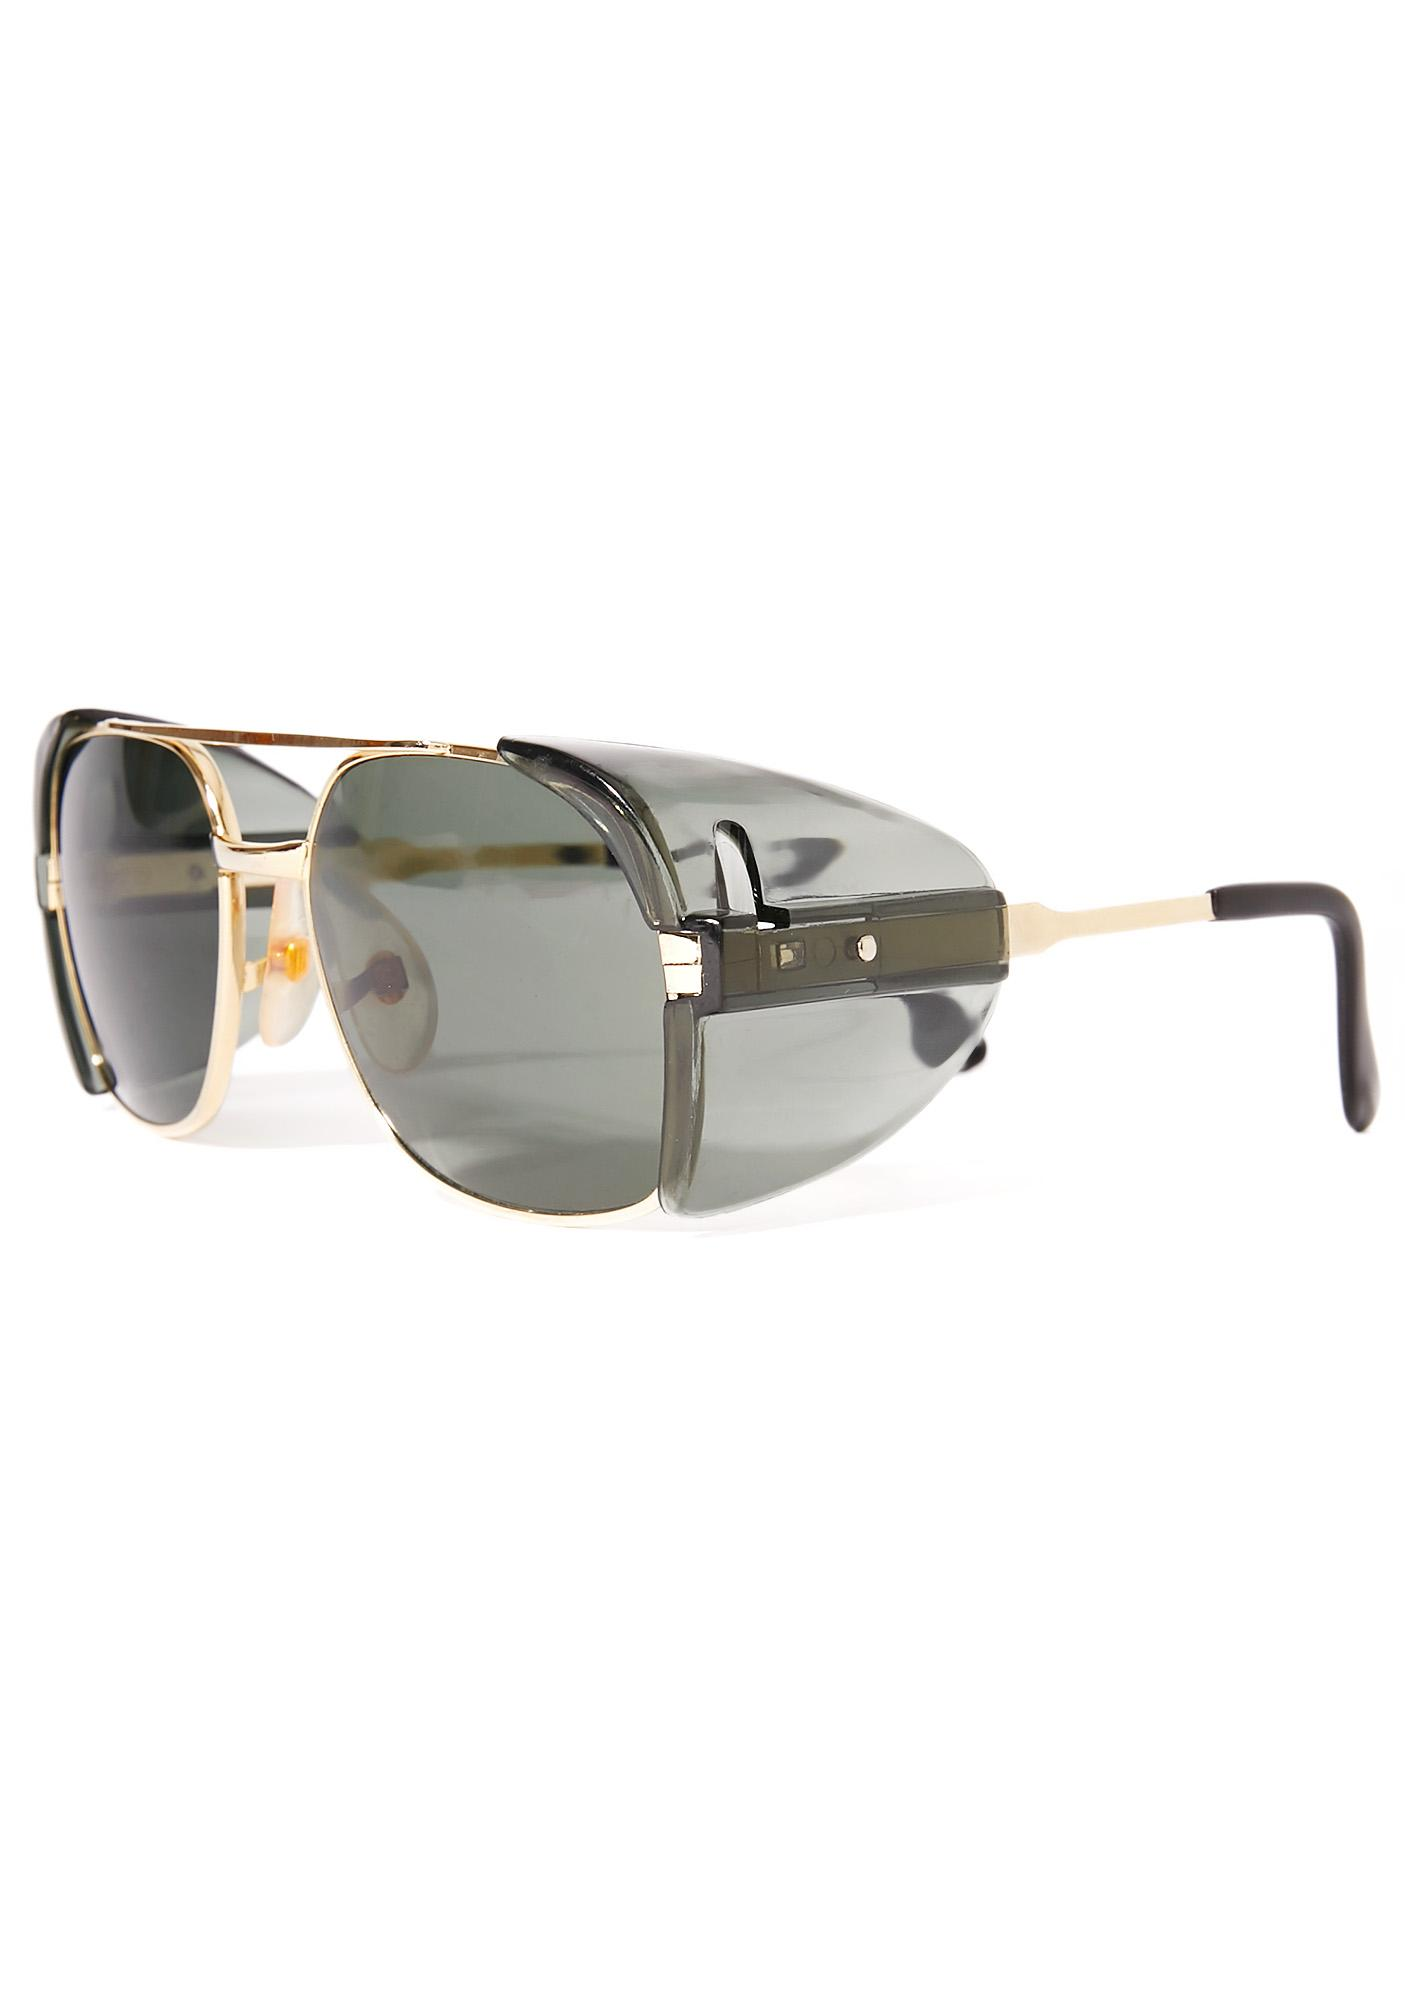 Dynamite Aviator Sunglasses